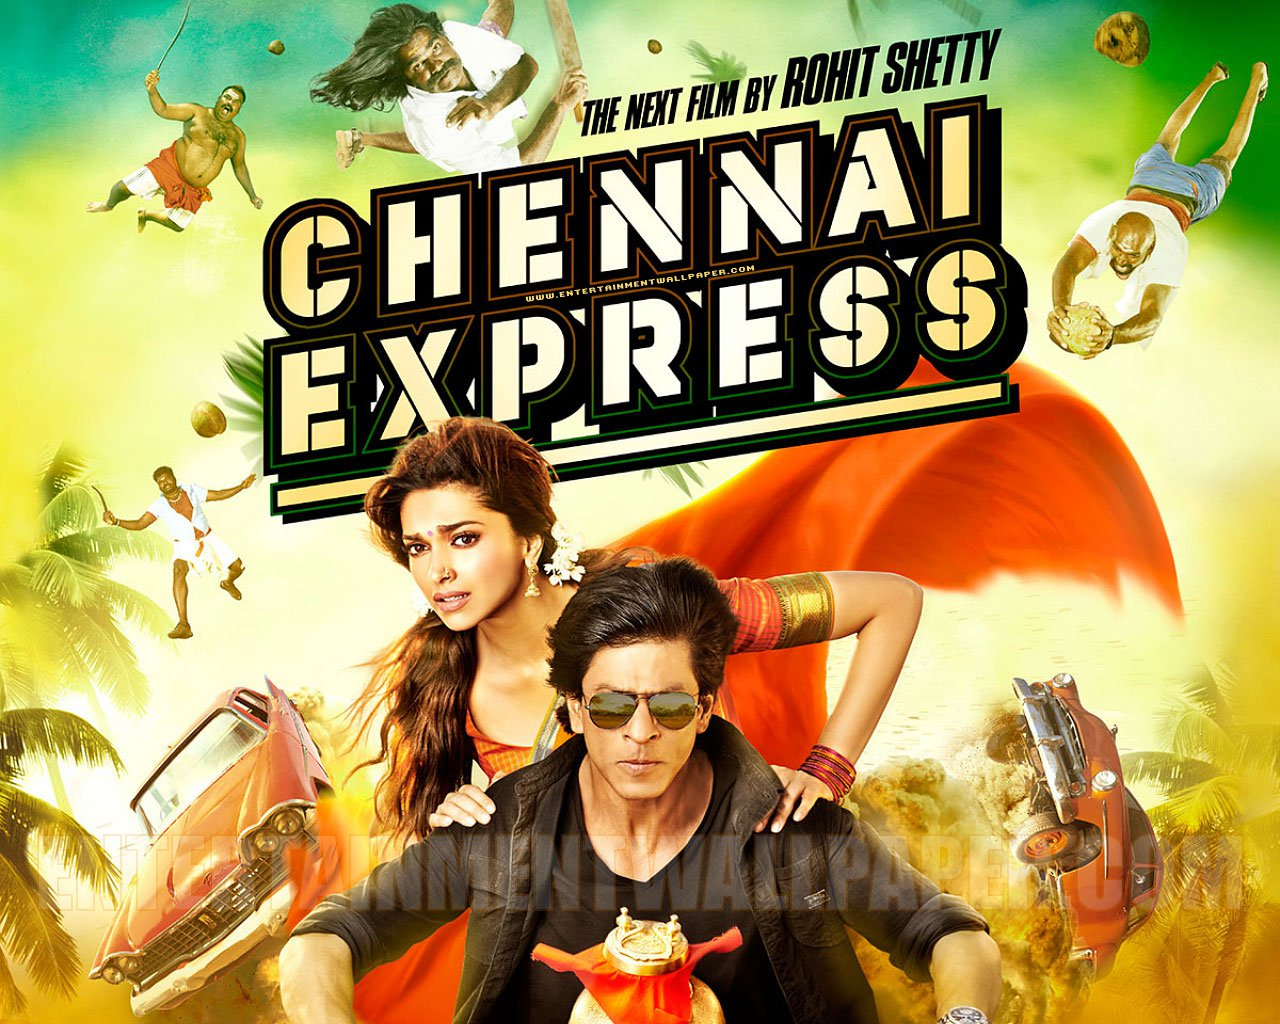 hd movie free download: chennai express 2013 hindi full hd movie